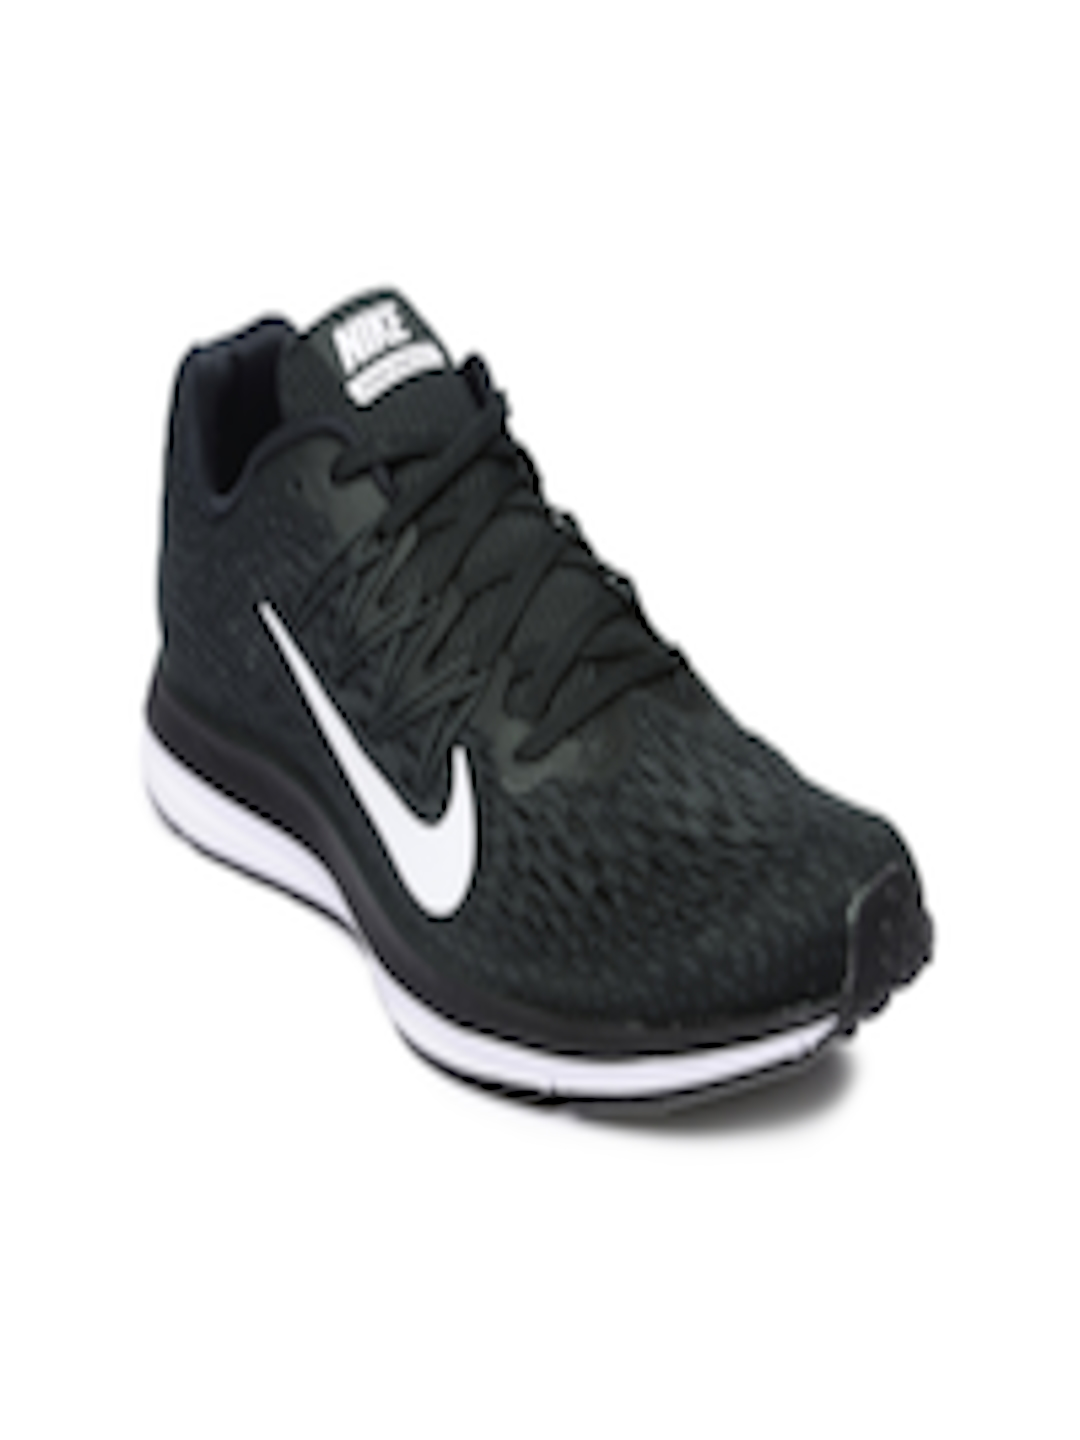 check out 6e856 1a8f6 Buy Nike Women Black Air Zoom Winflo 5 Running Shoes - - Footwear for Women